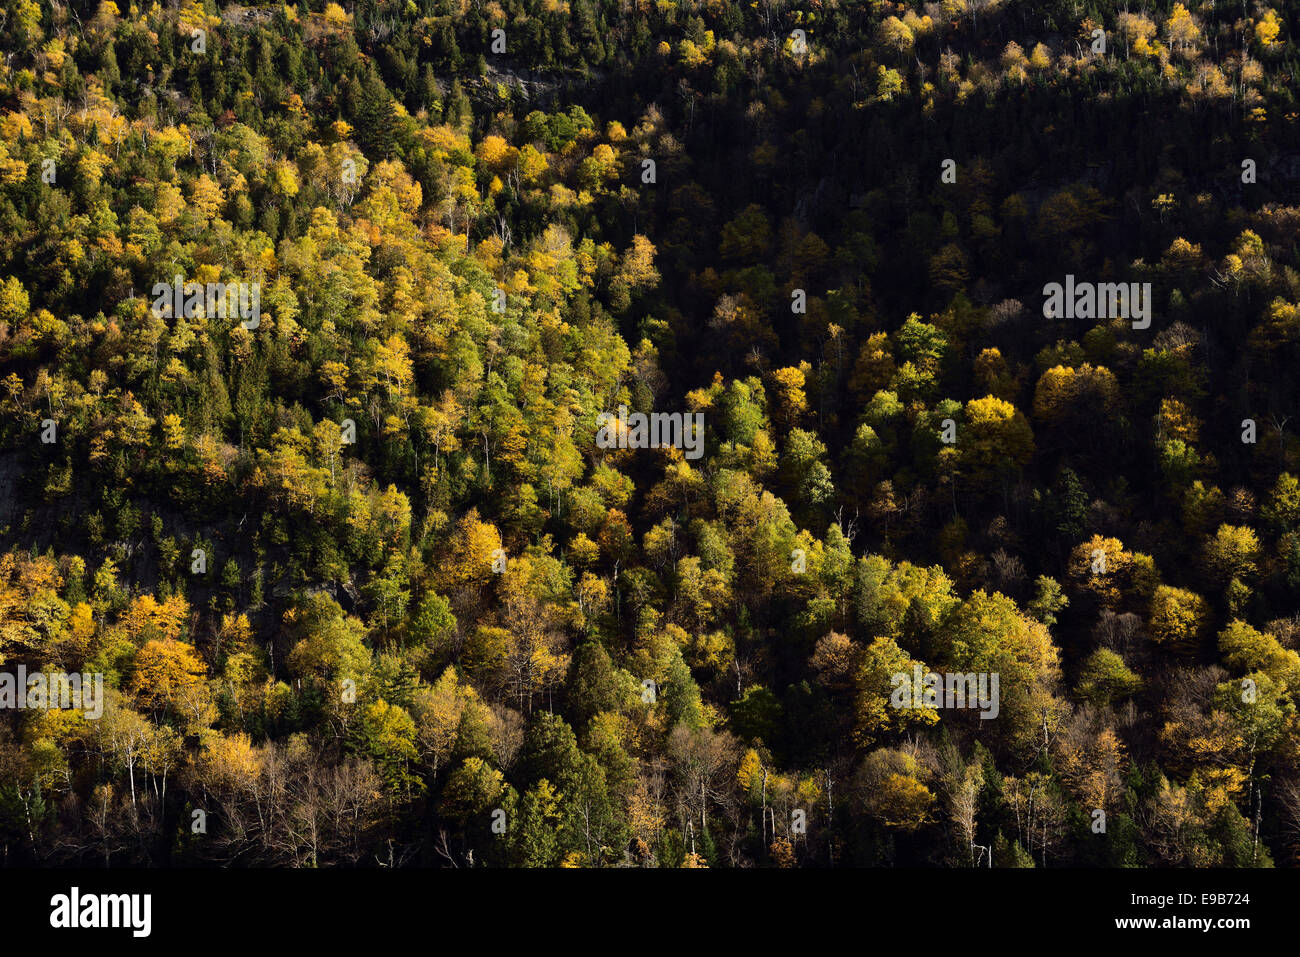 Sidelit trees on the steep slope of Cascade mountain at the Lower Lake in Adirondack Park New York - Stock Image